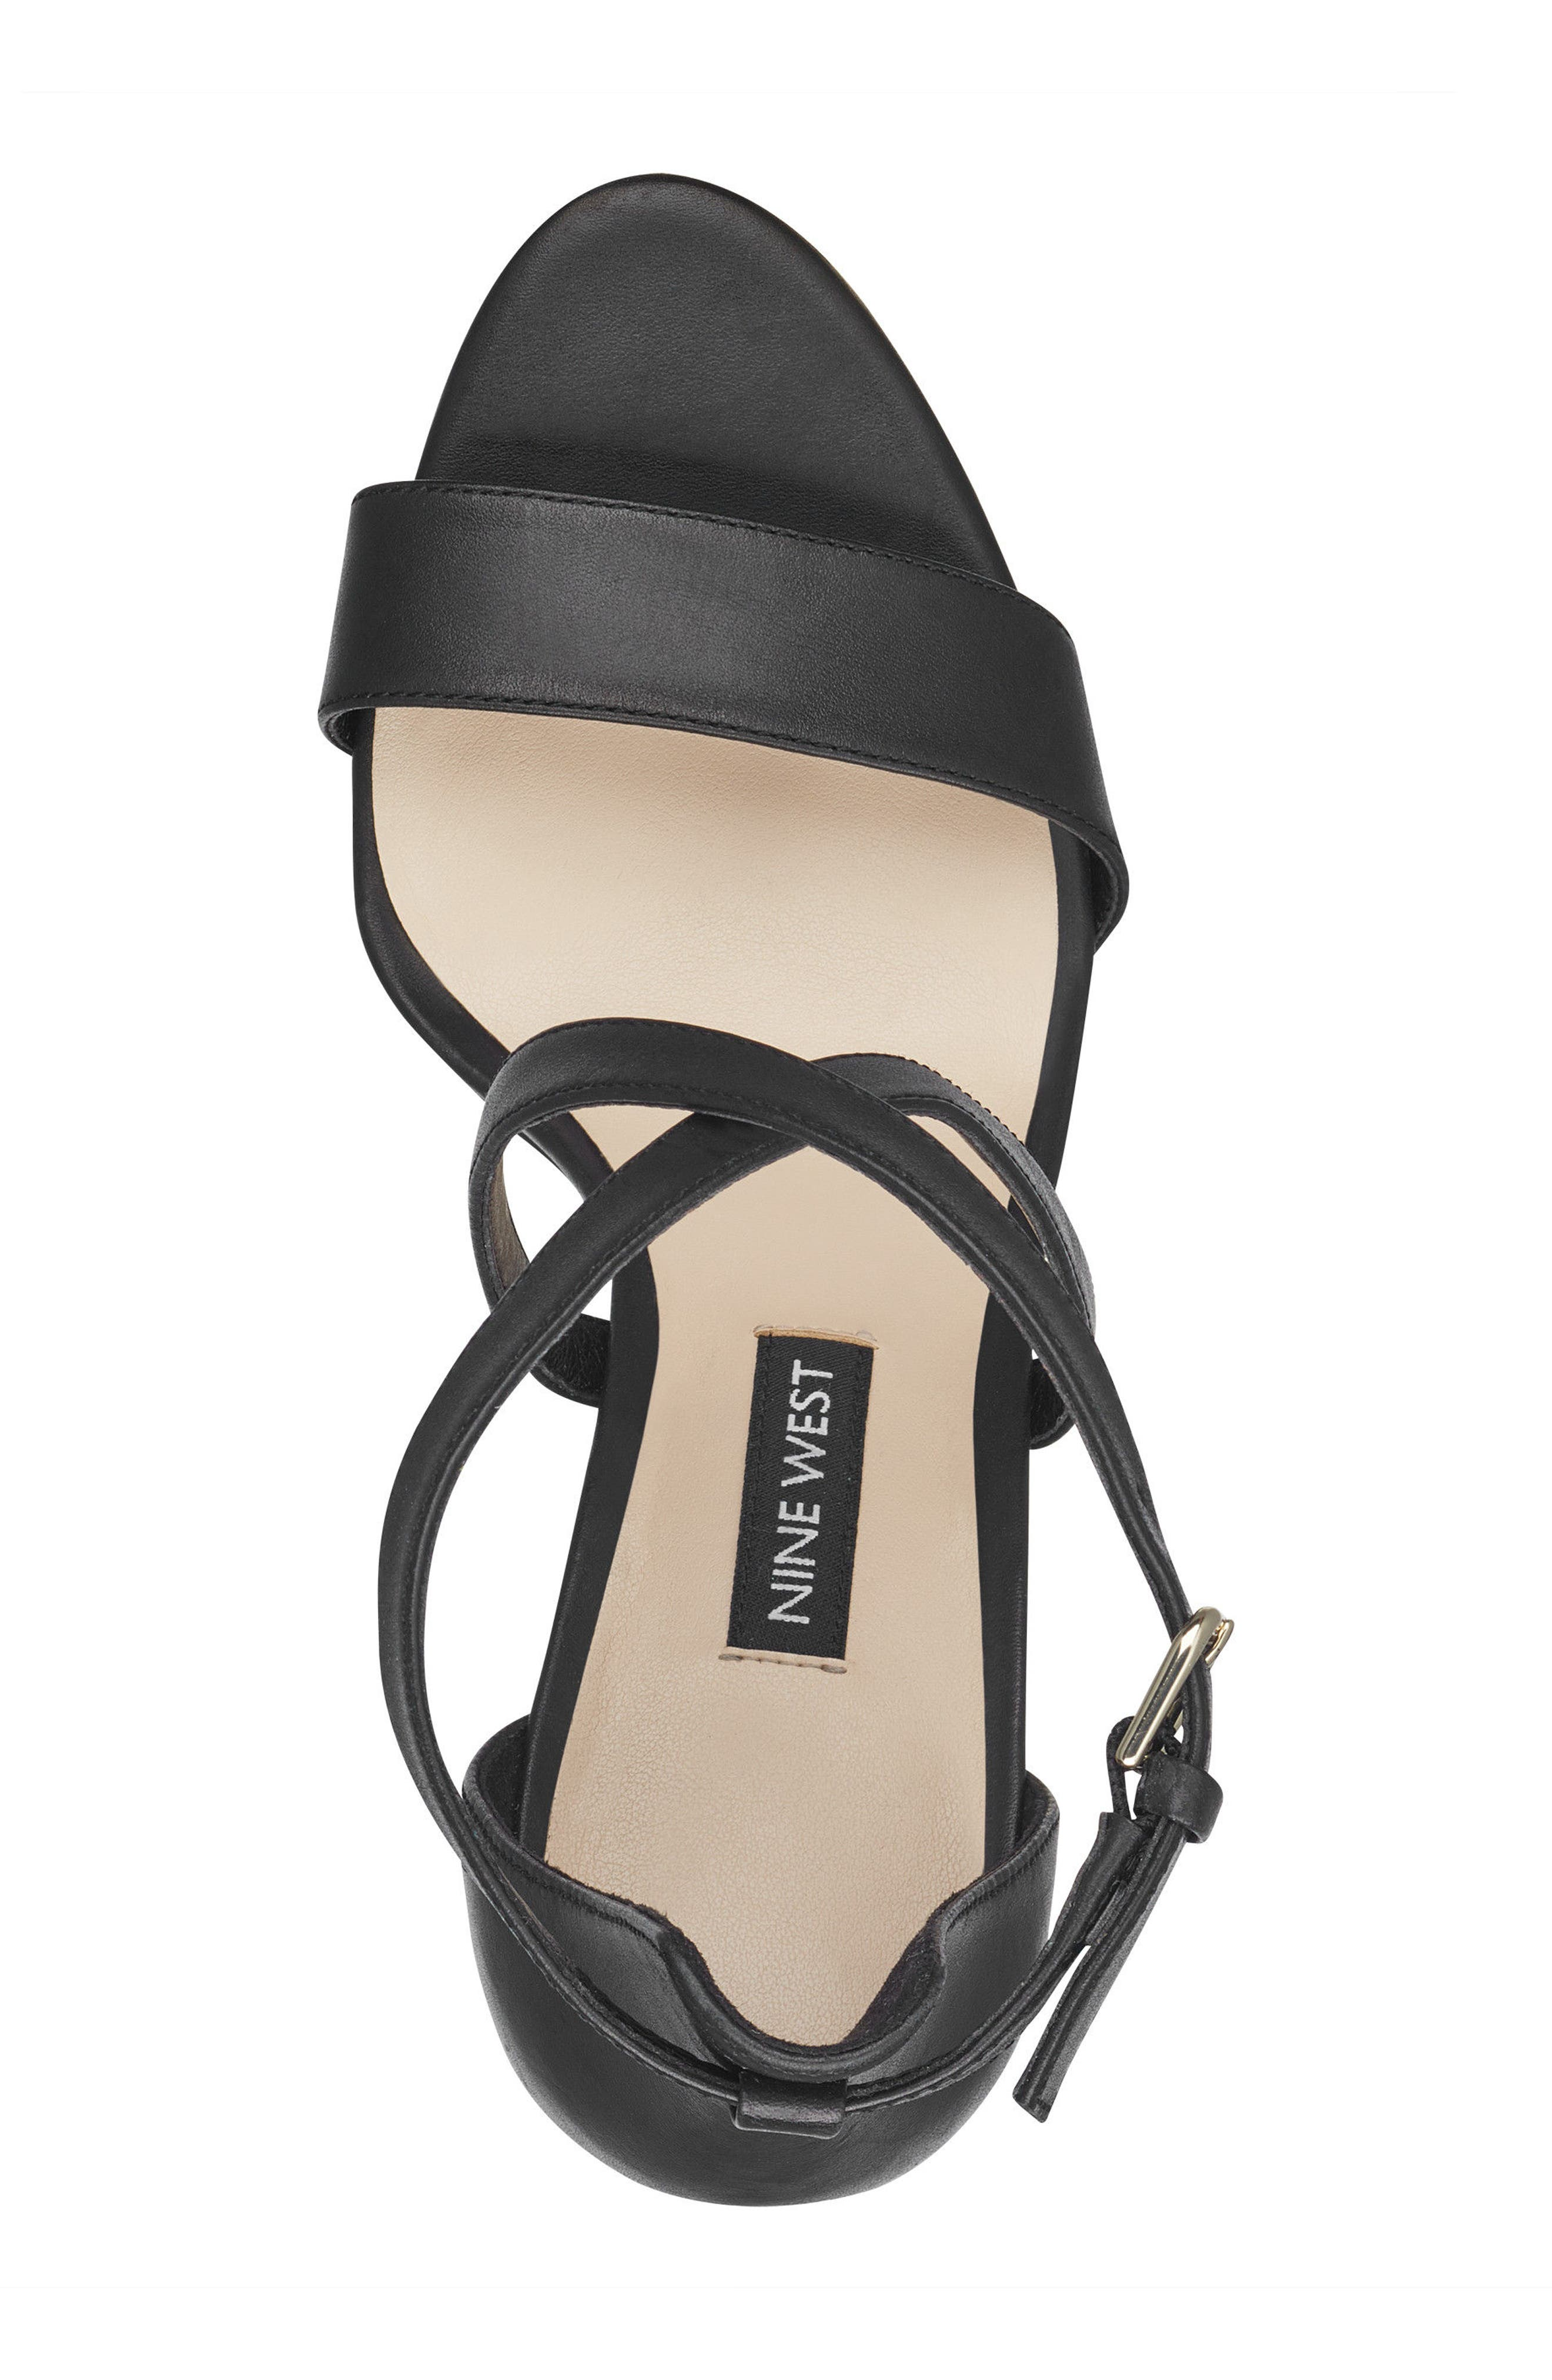 Mydebut Strappy Sandal,                             Alternate thumbnail 5, color,                             BLACK LEATHER